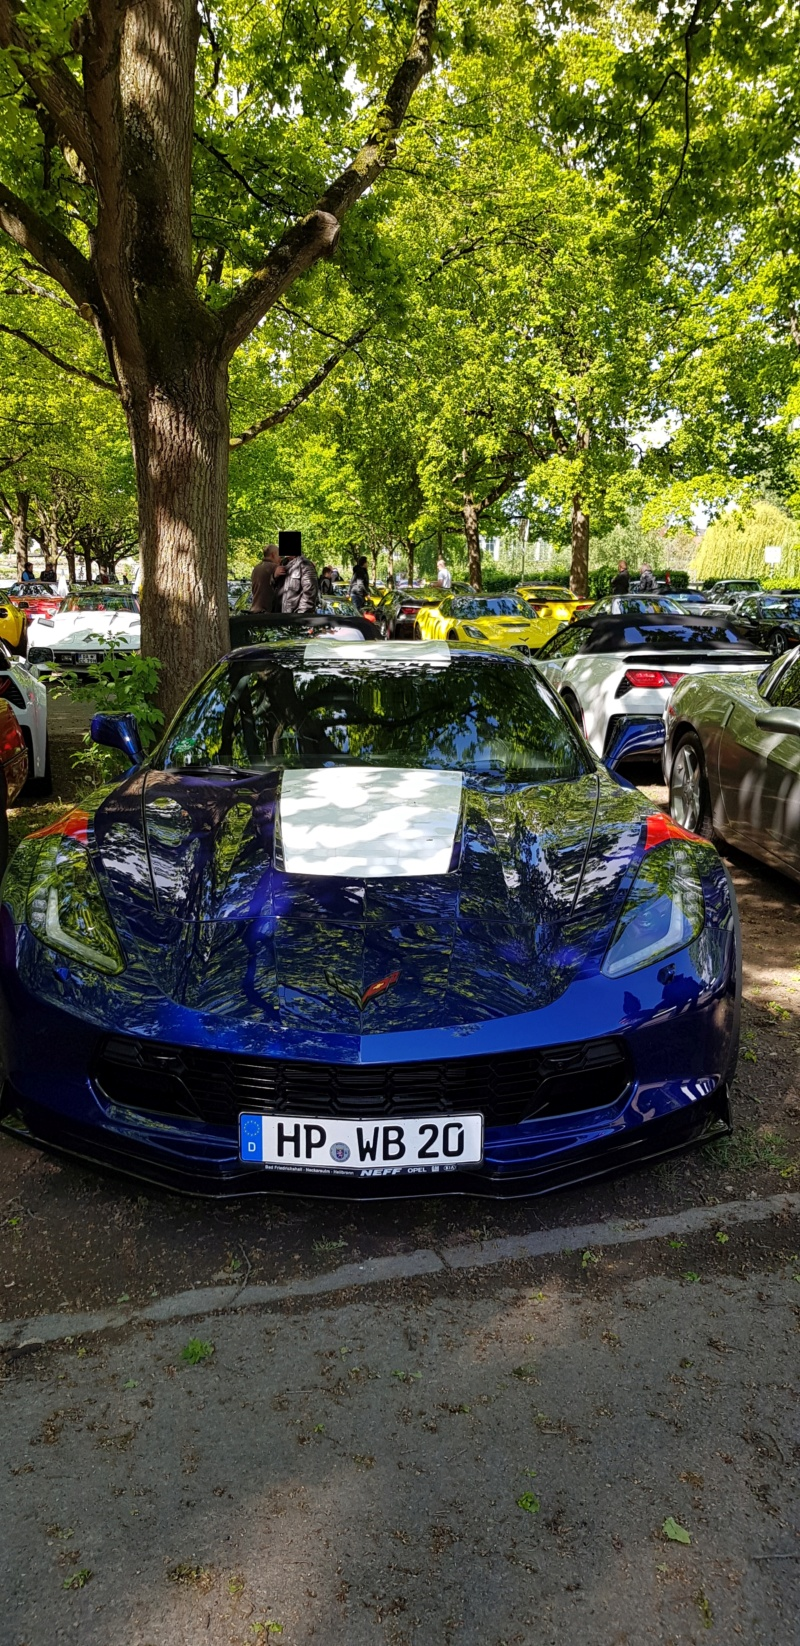 16. Corvette Sunday der Corvettenfreunde Kurpfalz in Ladenburg 5.5.2019 20190510